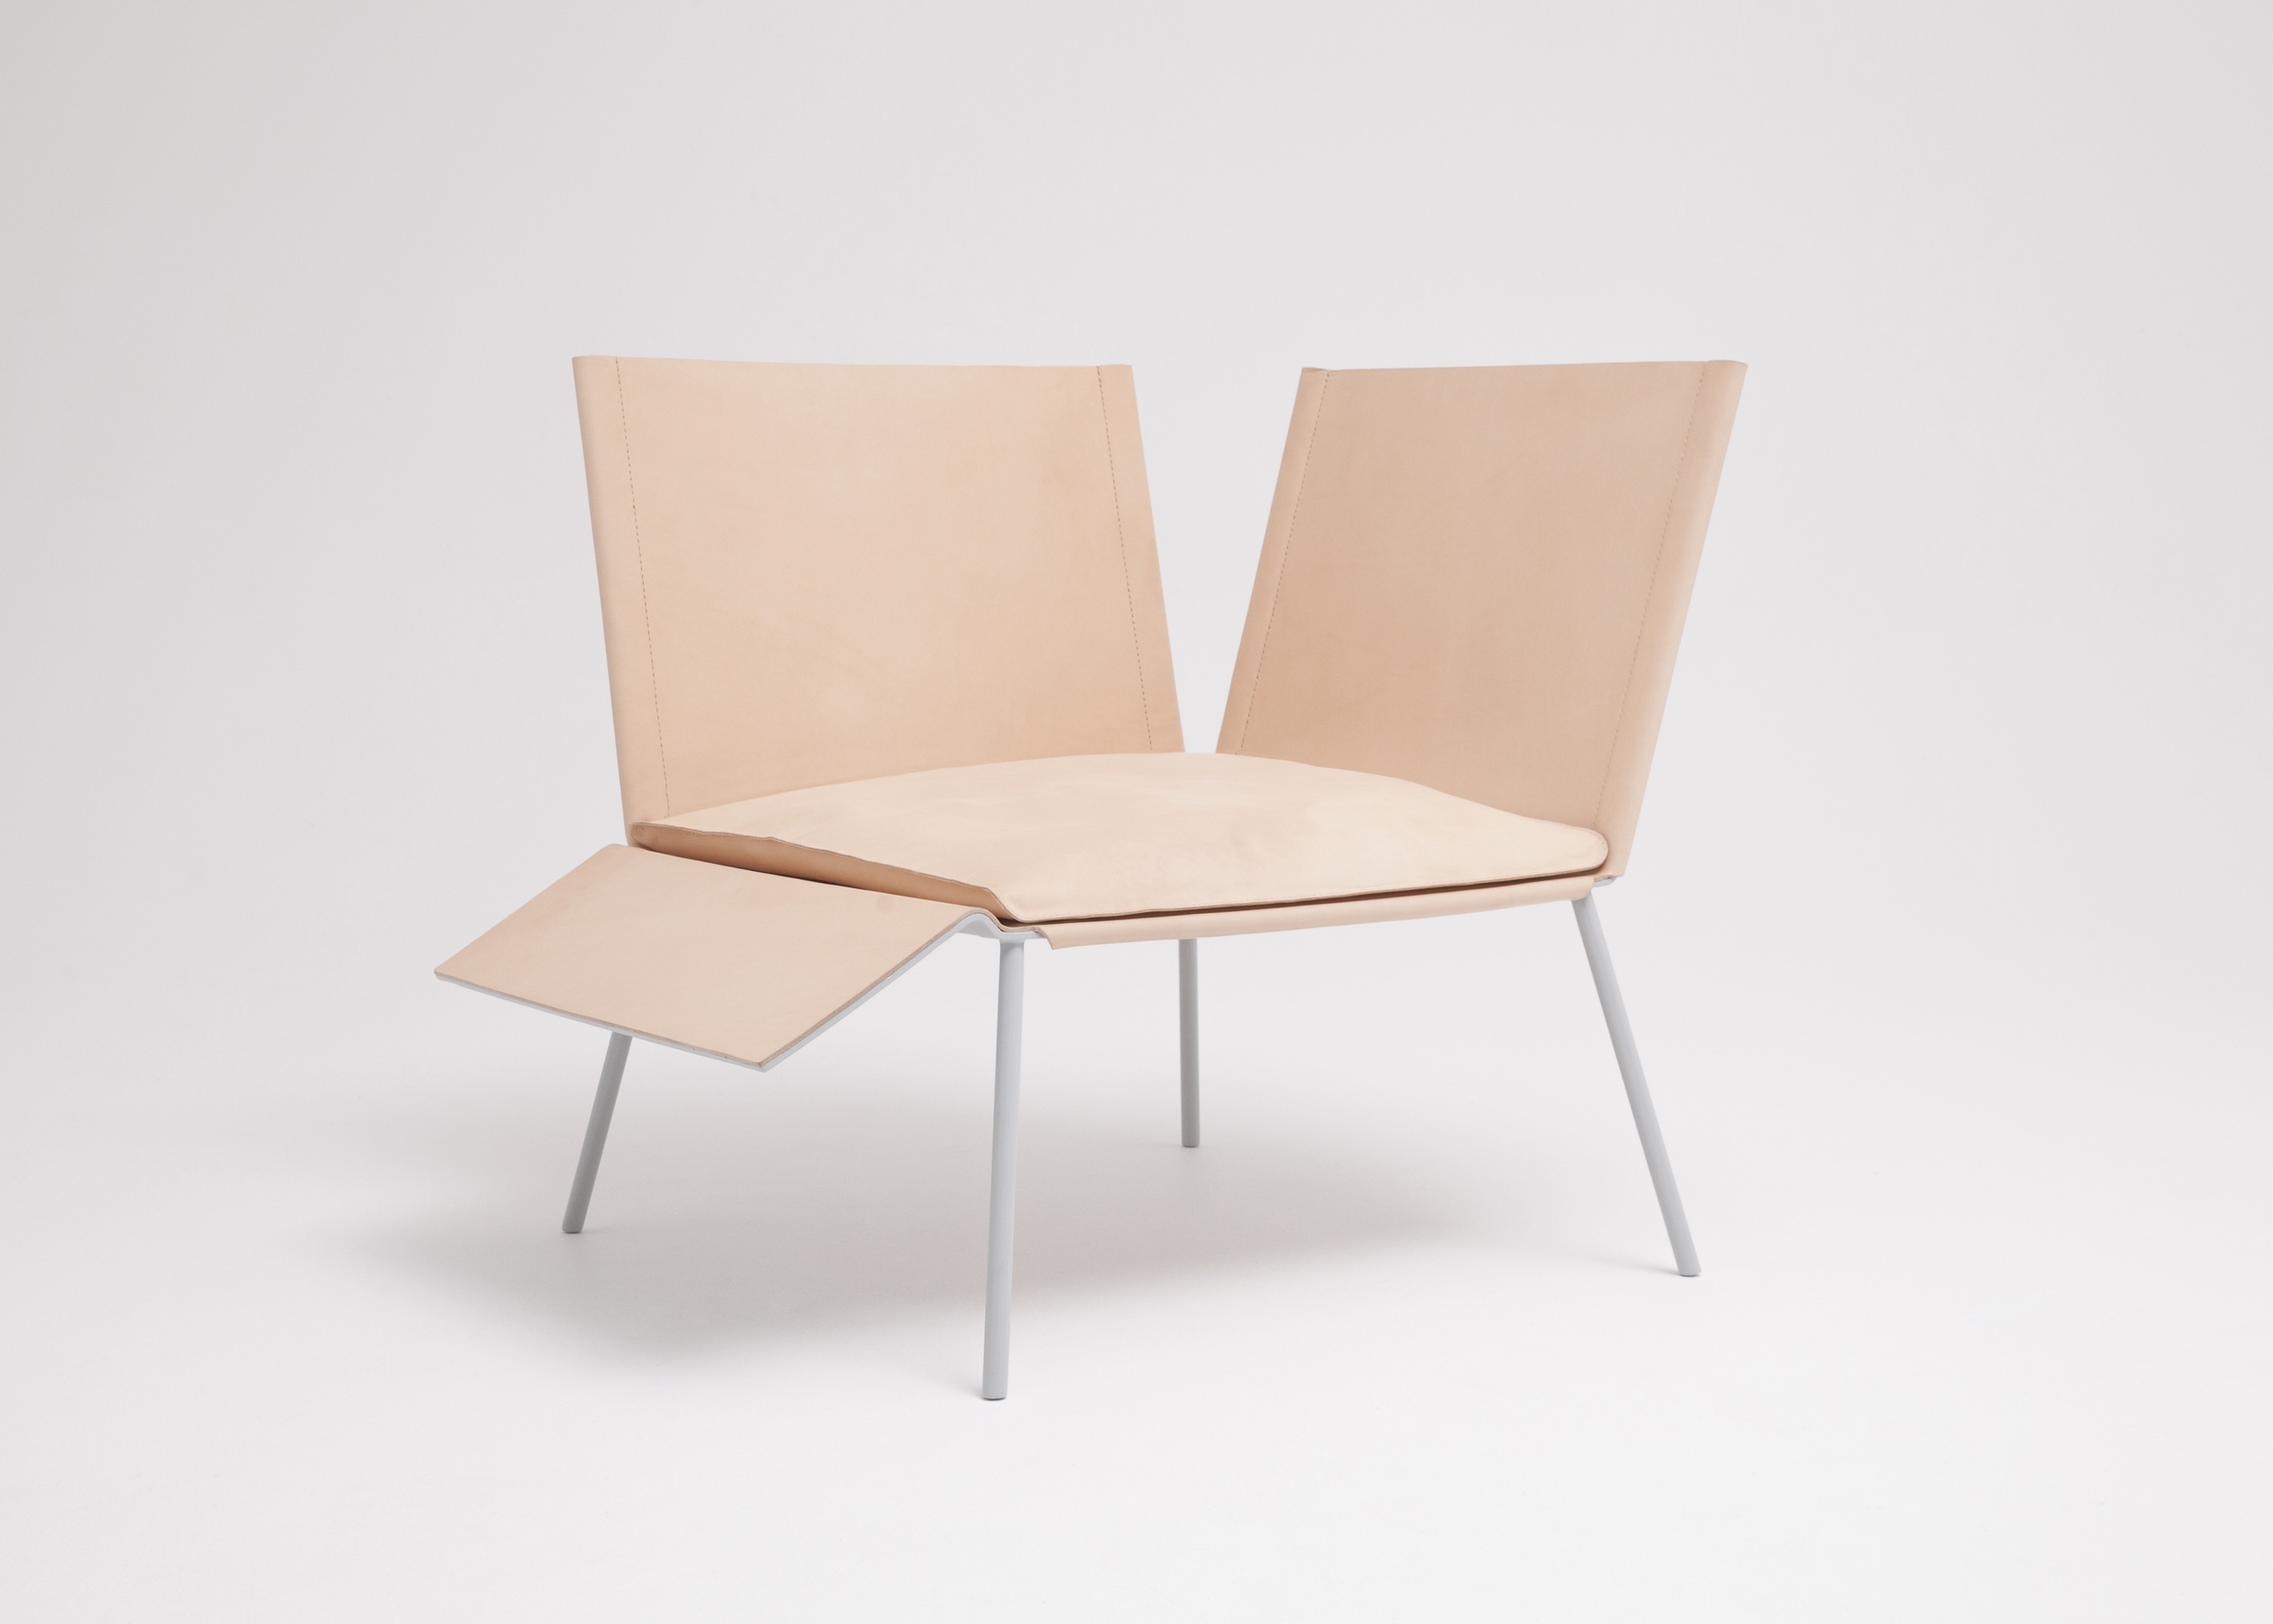 Thom Fougere Saddle Chair 1